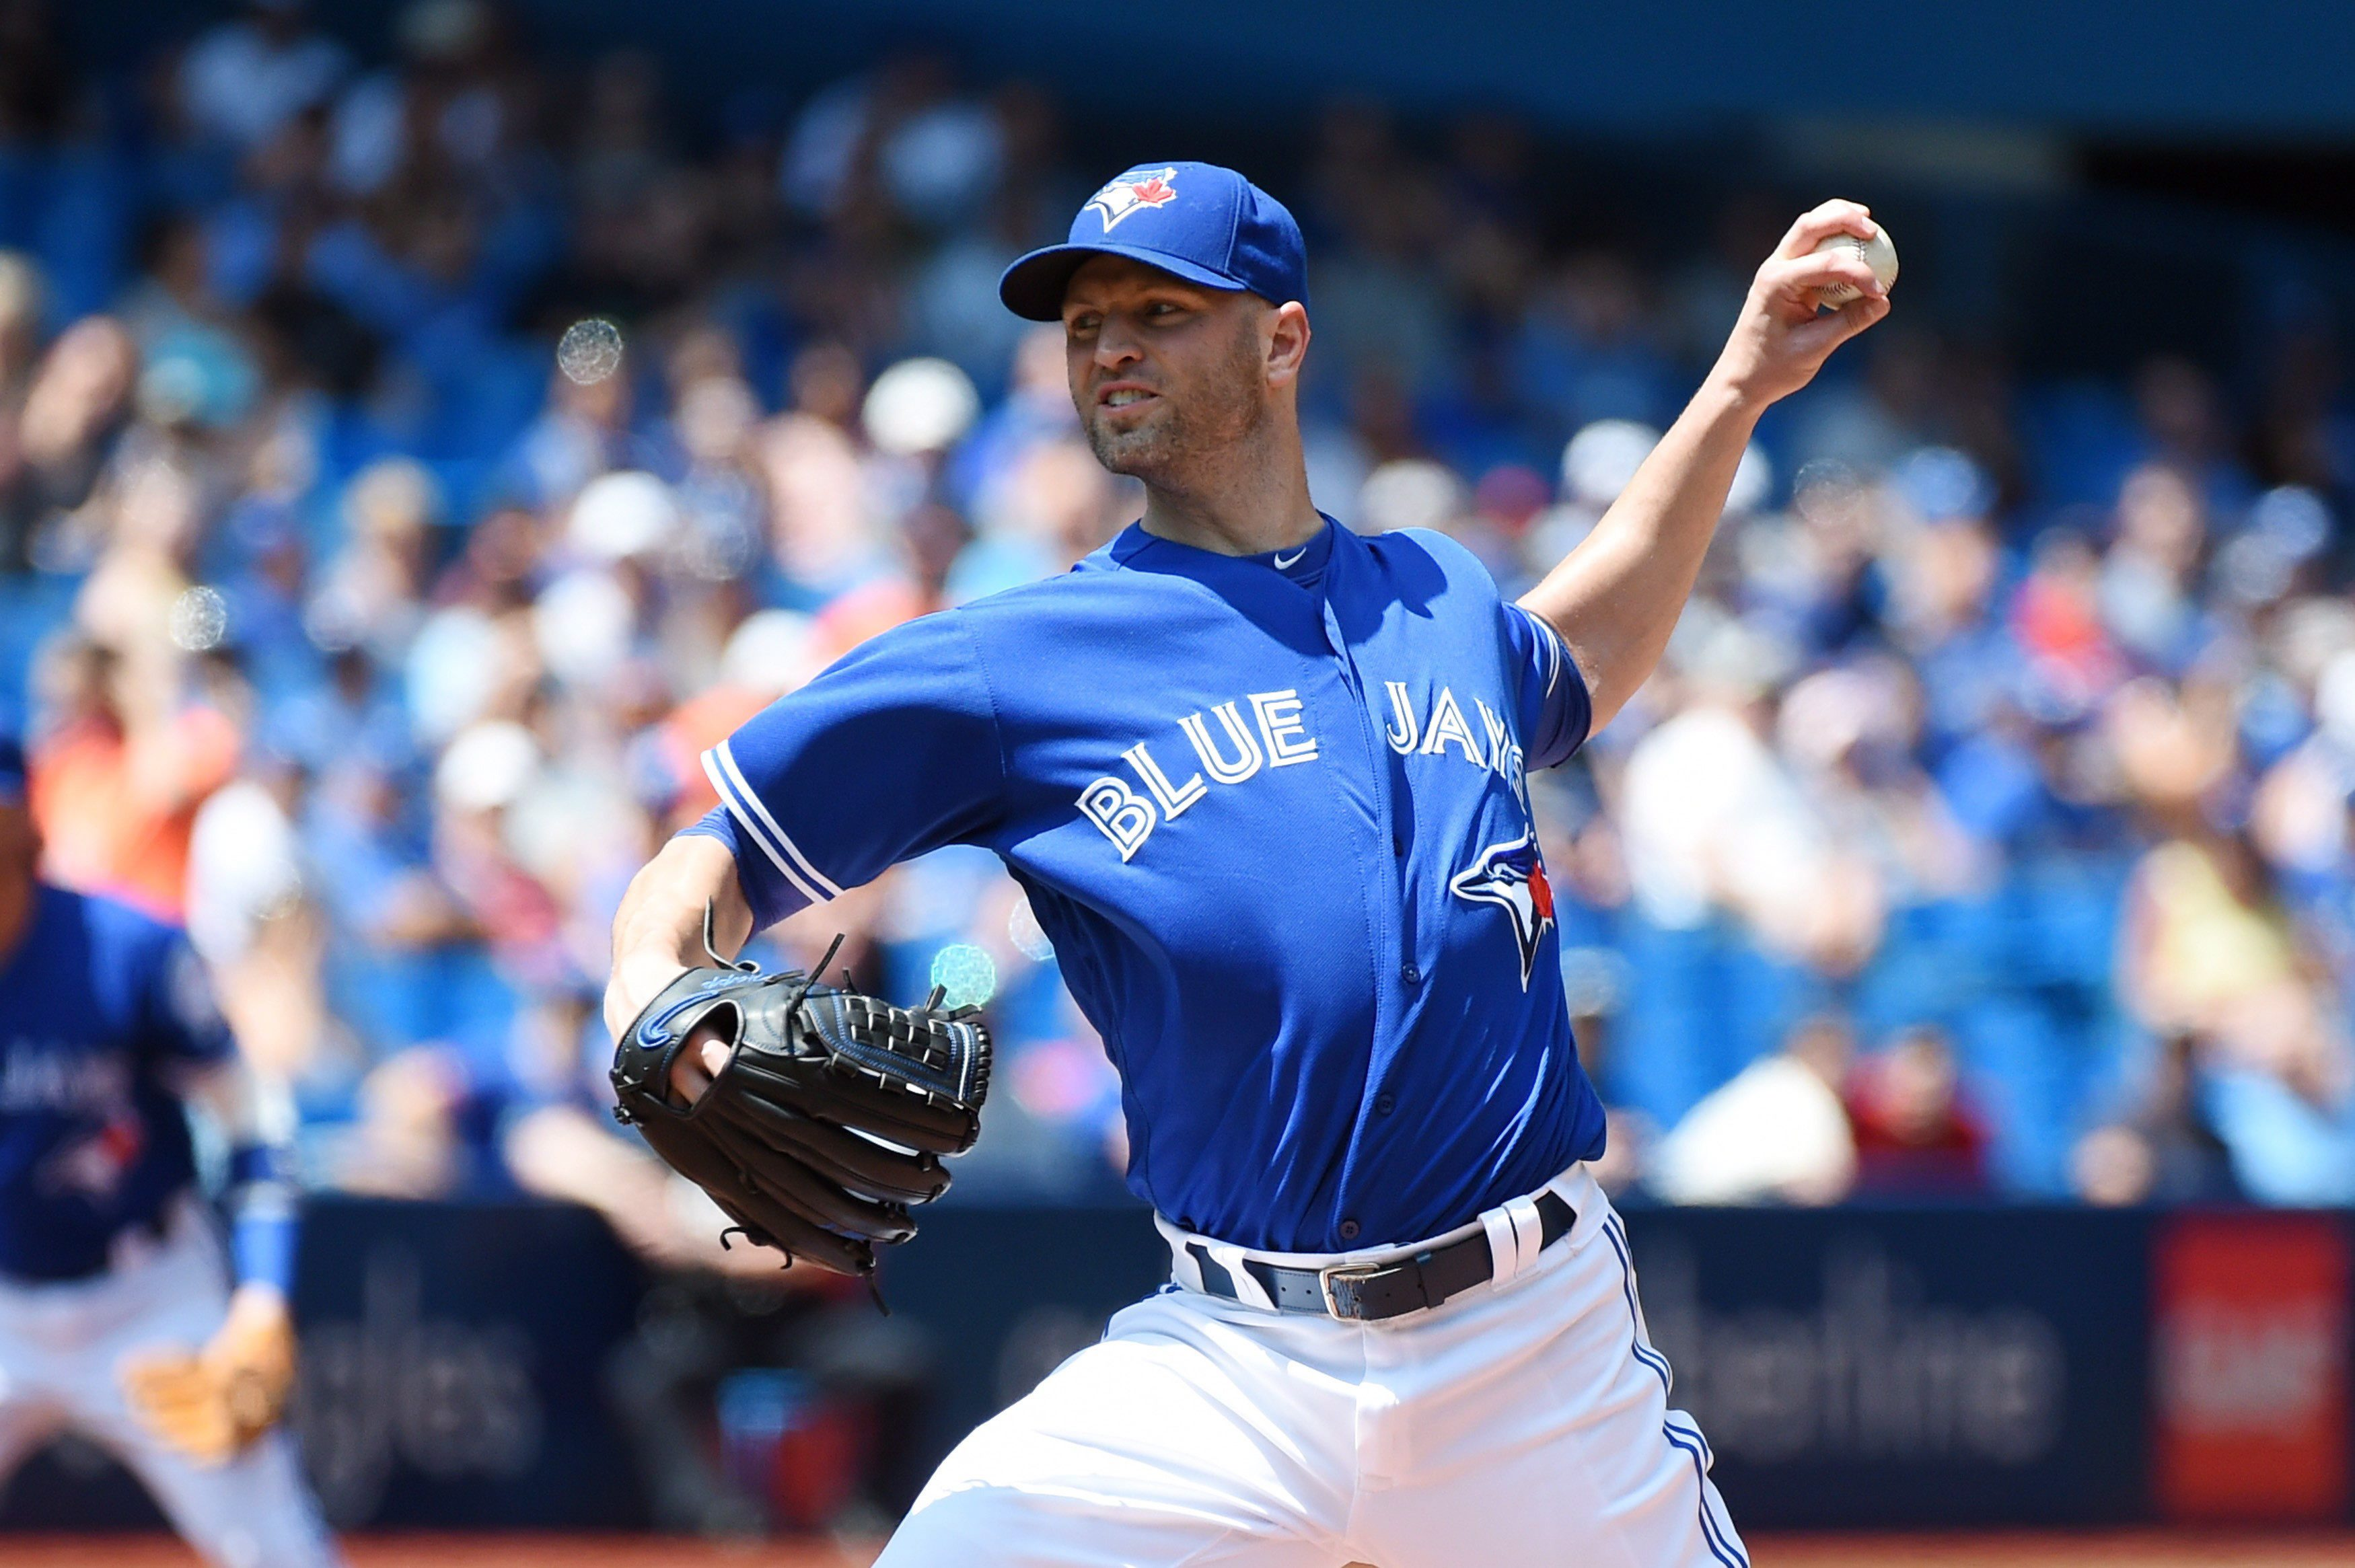 Blue Jays trade Happ to Yankees